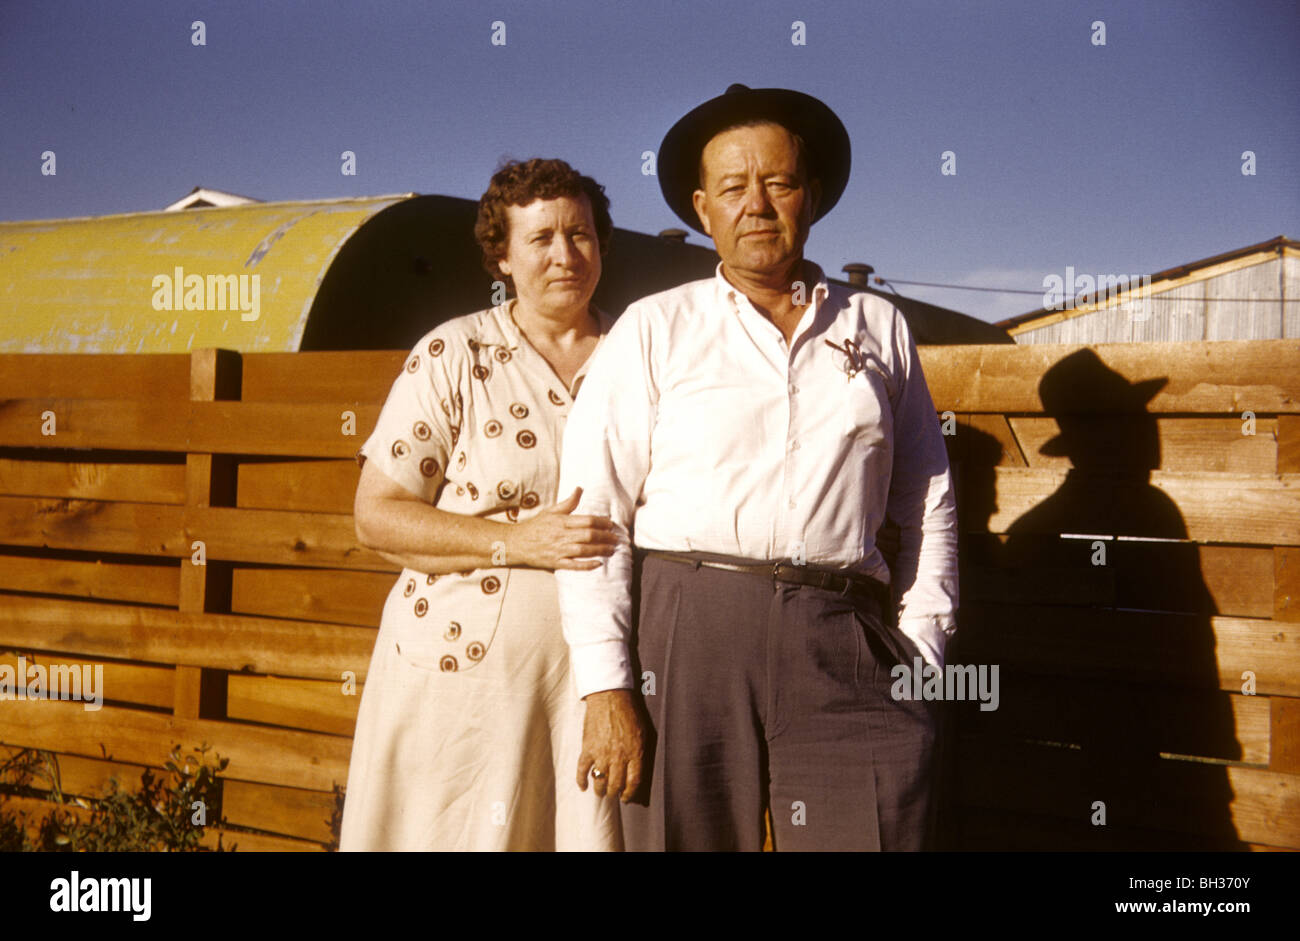 Old married couple standing by a fence in the American West during the 1950s or 1960s. - Stock Image